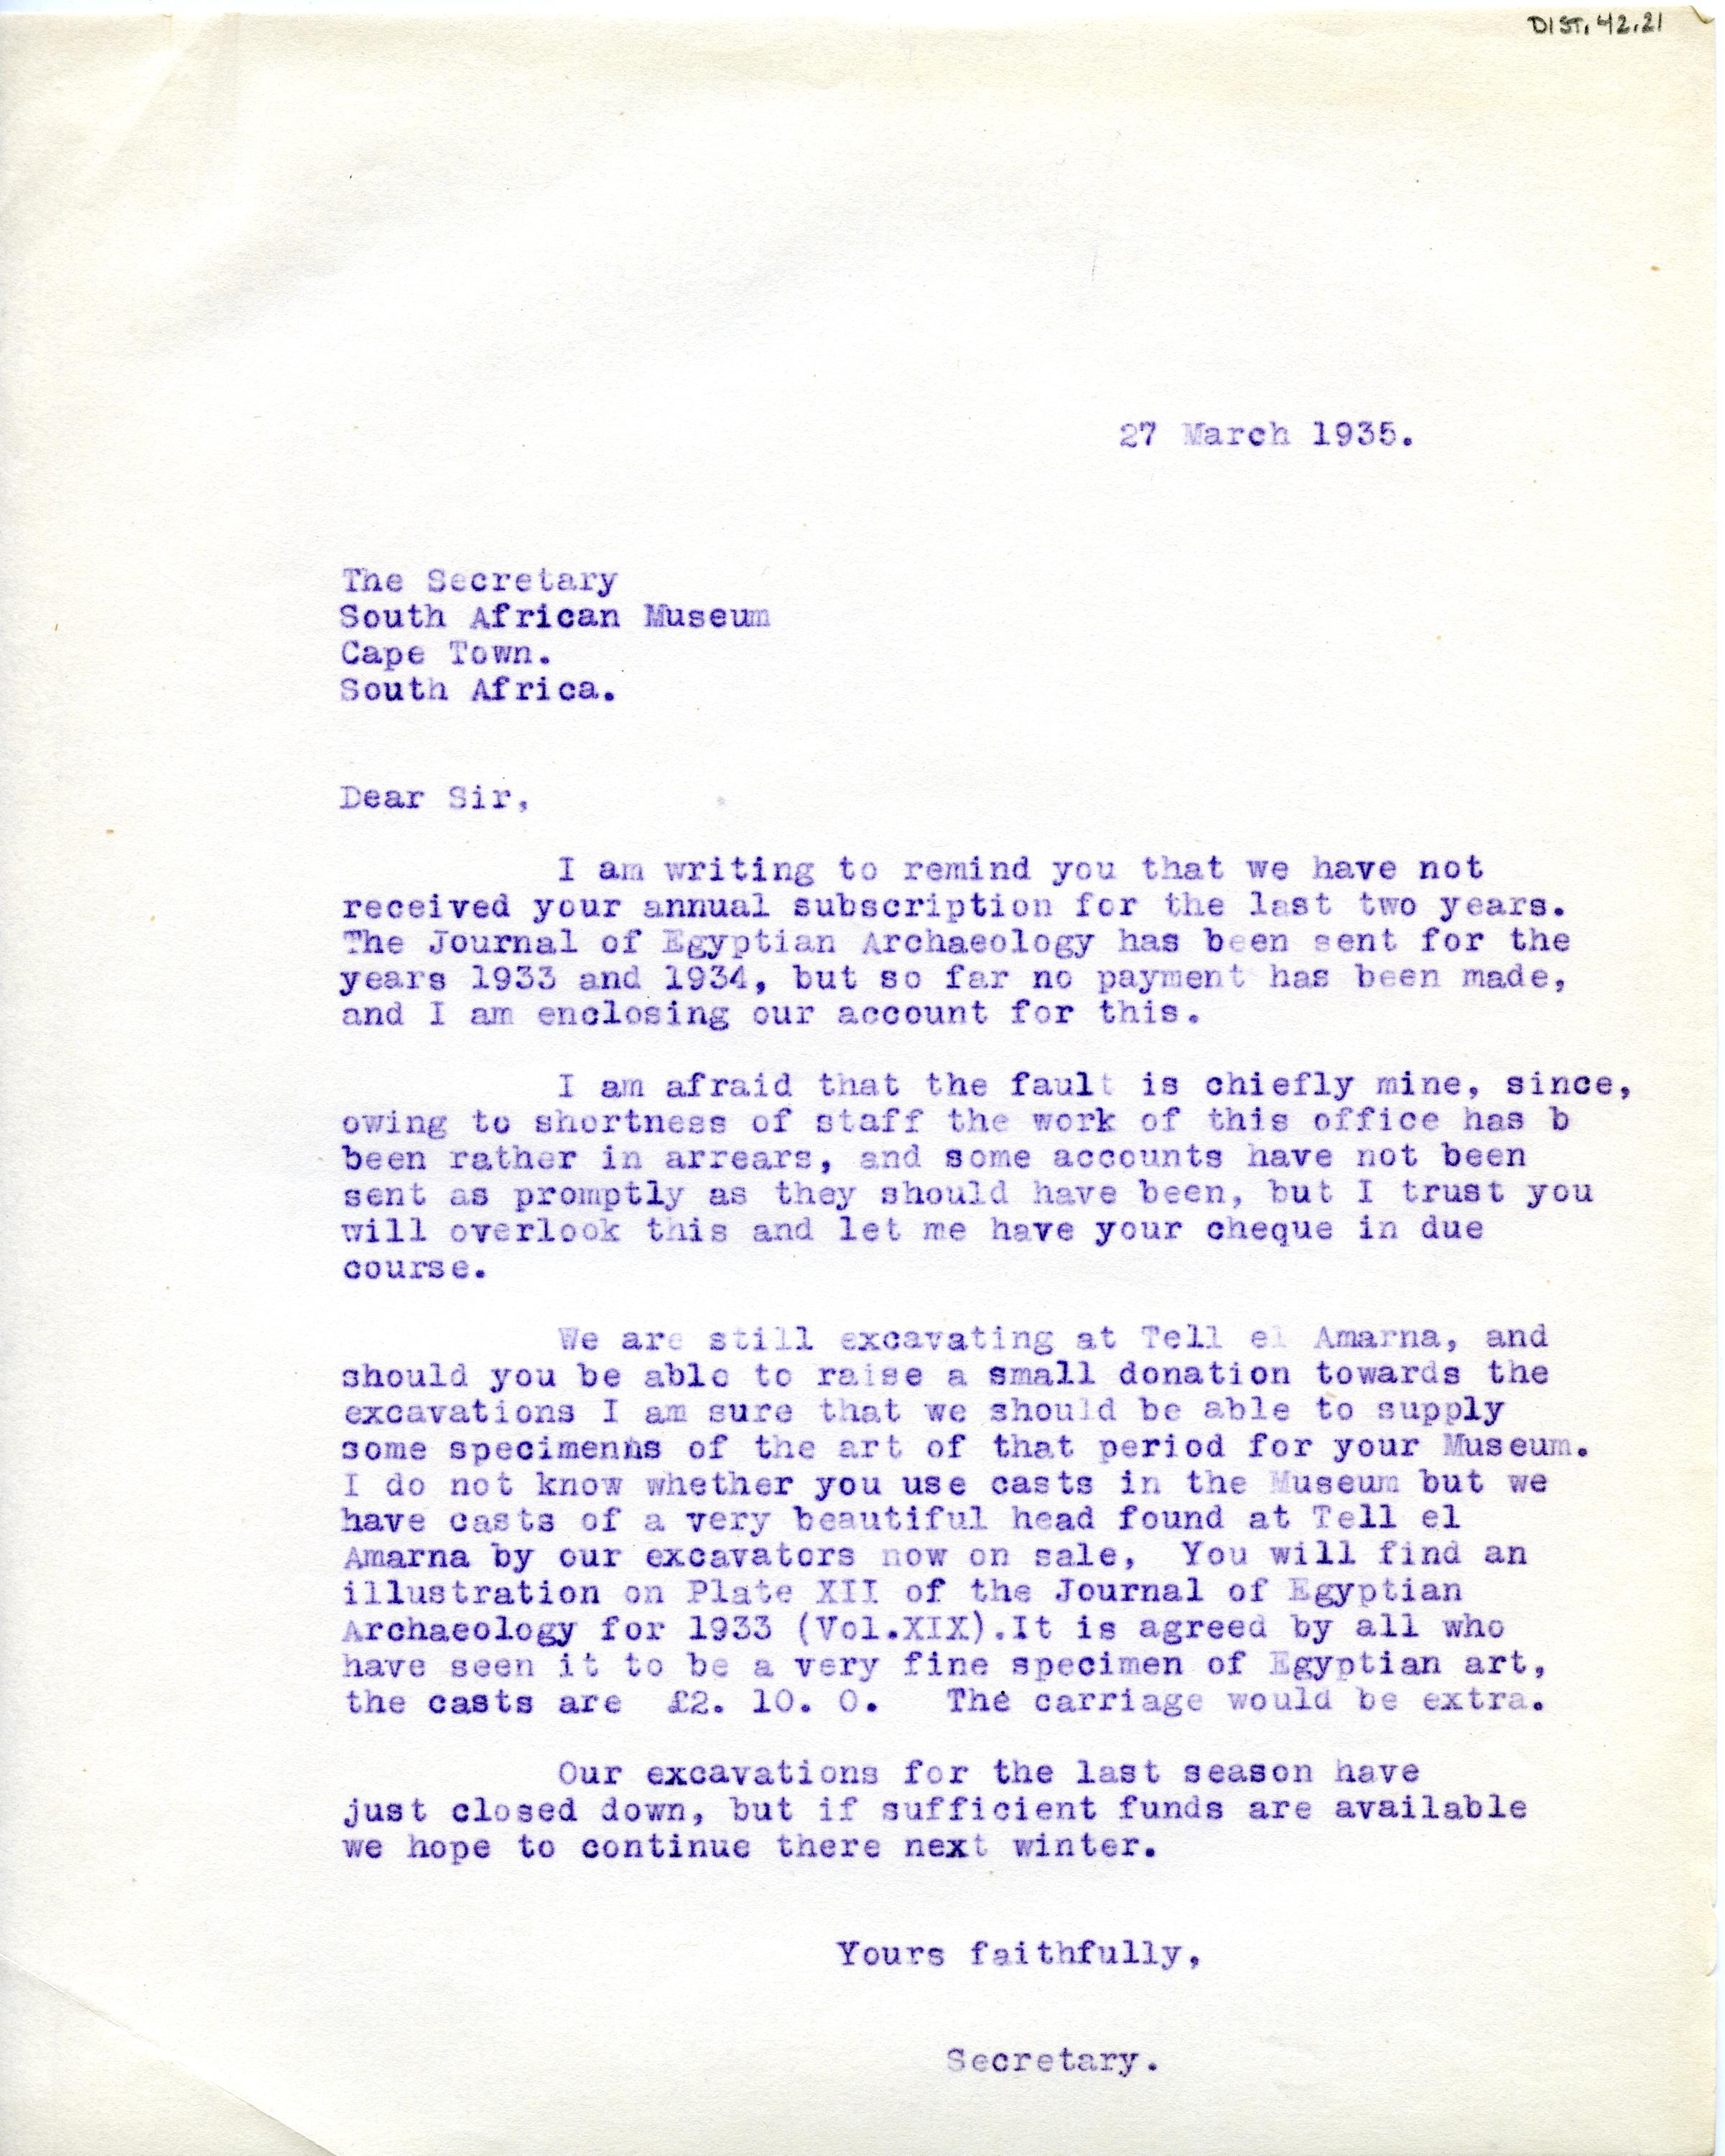 1922-71 Miscellaneous correspondence with museums DIST.42.21